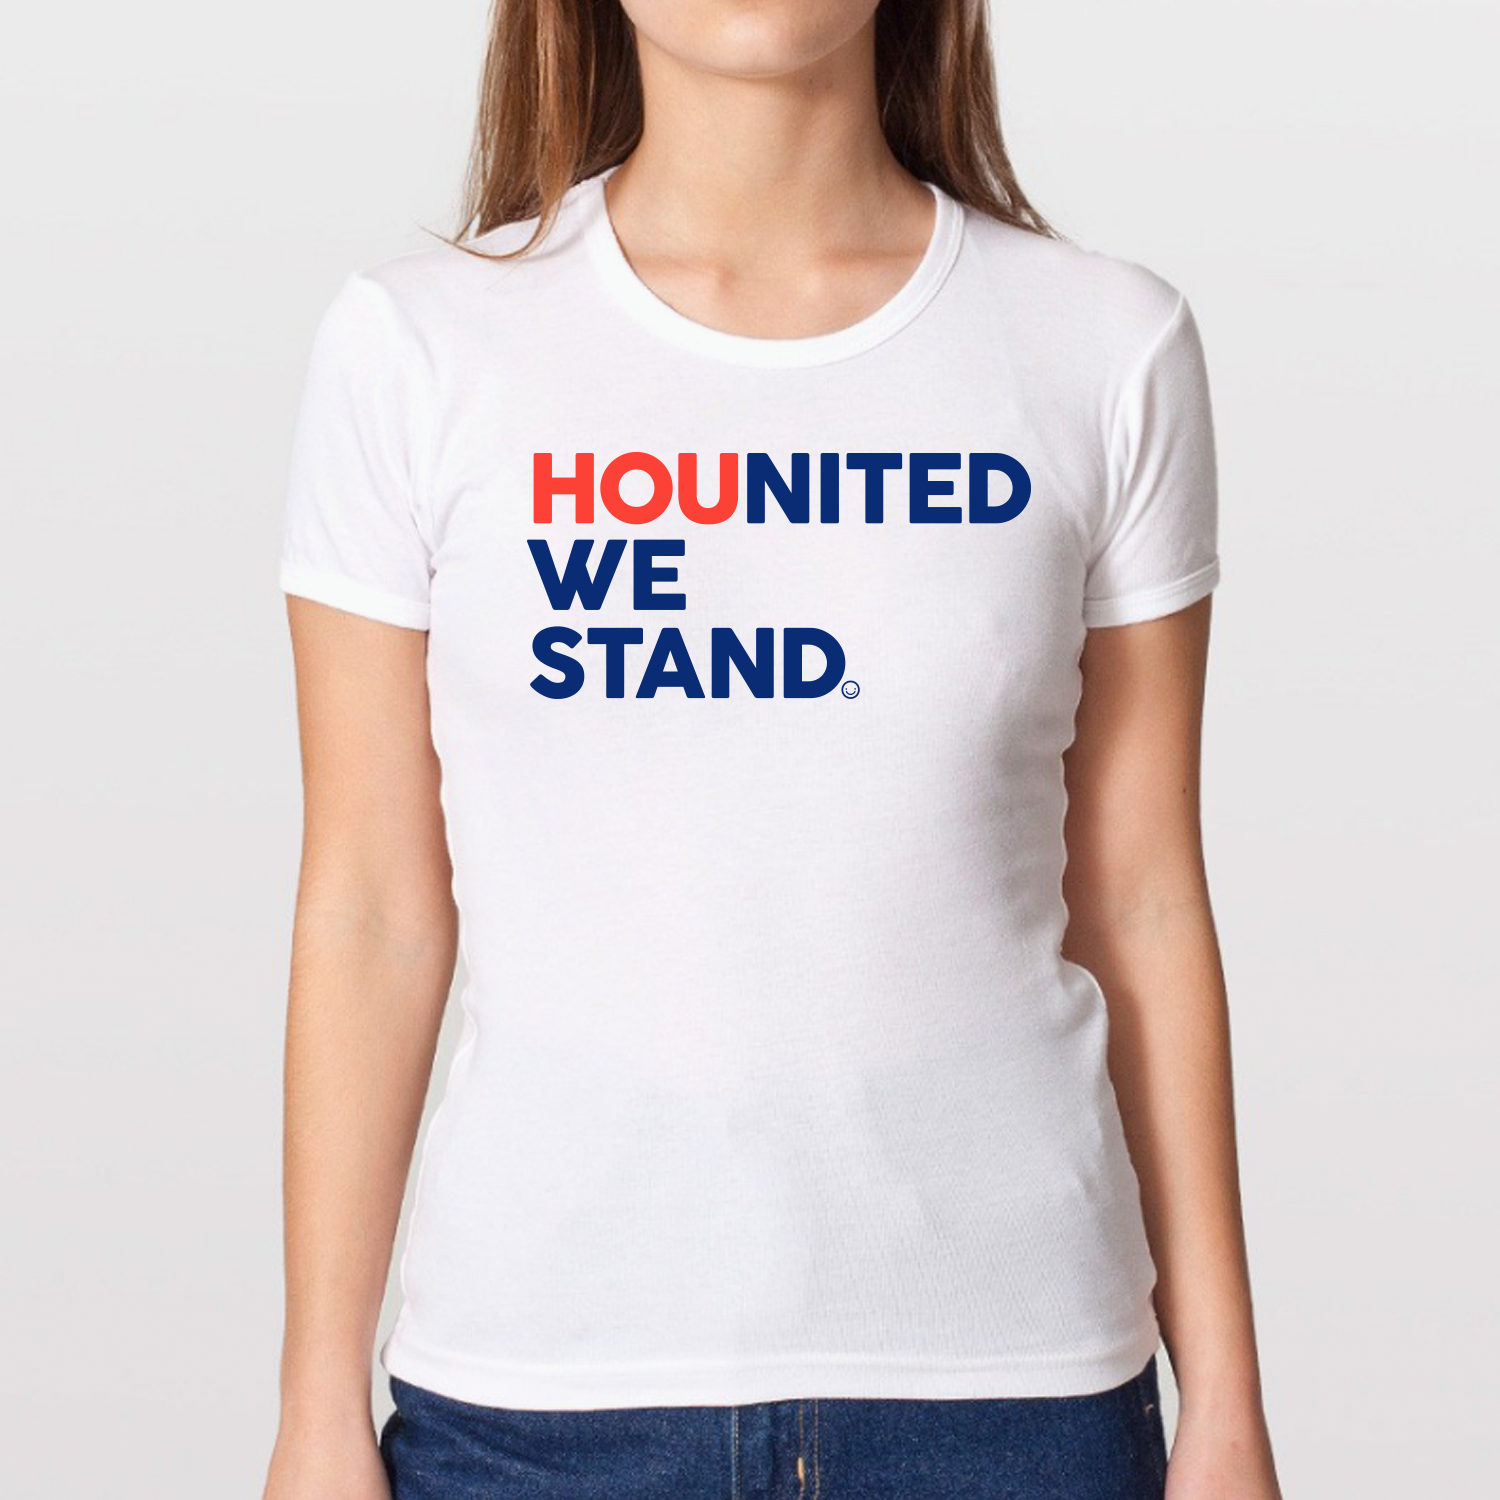 HappyBombs-HounitedWeStand-White-Womens.png